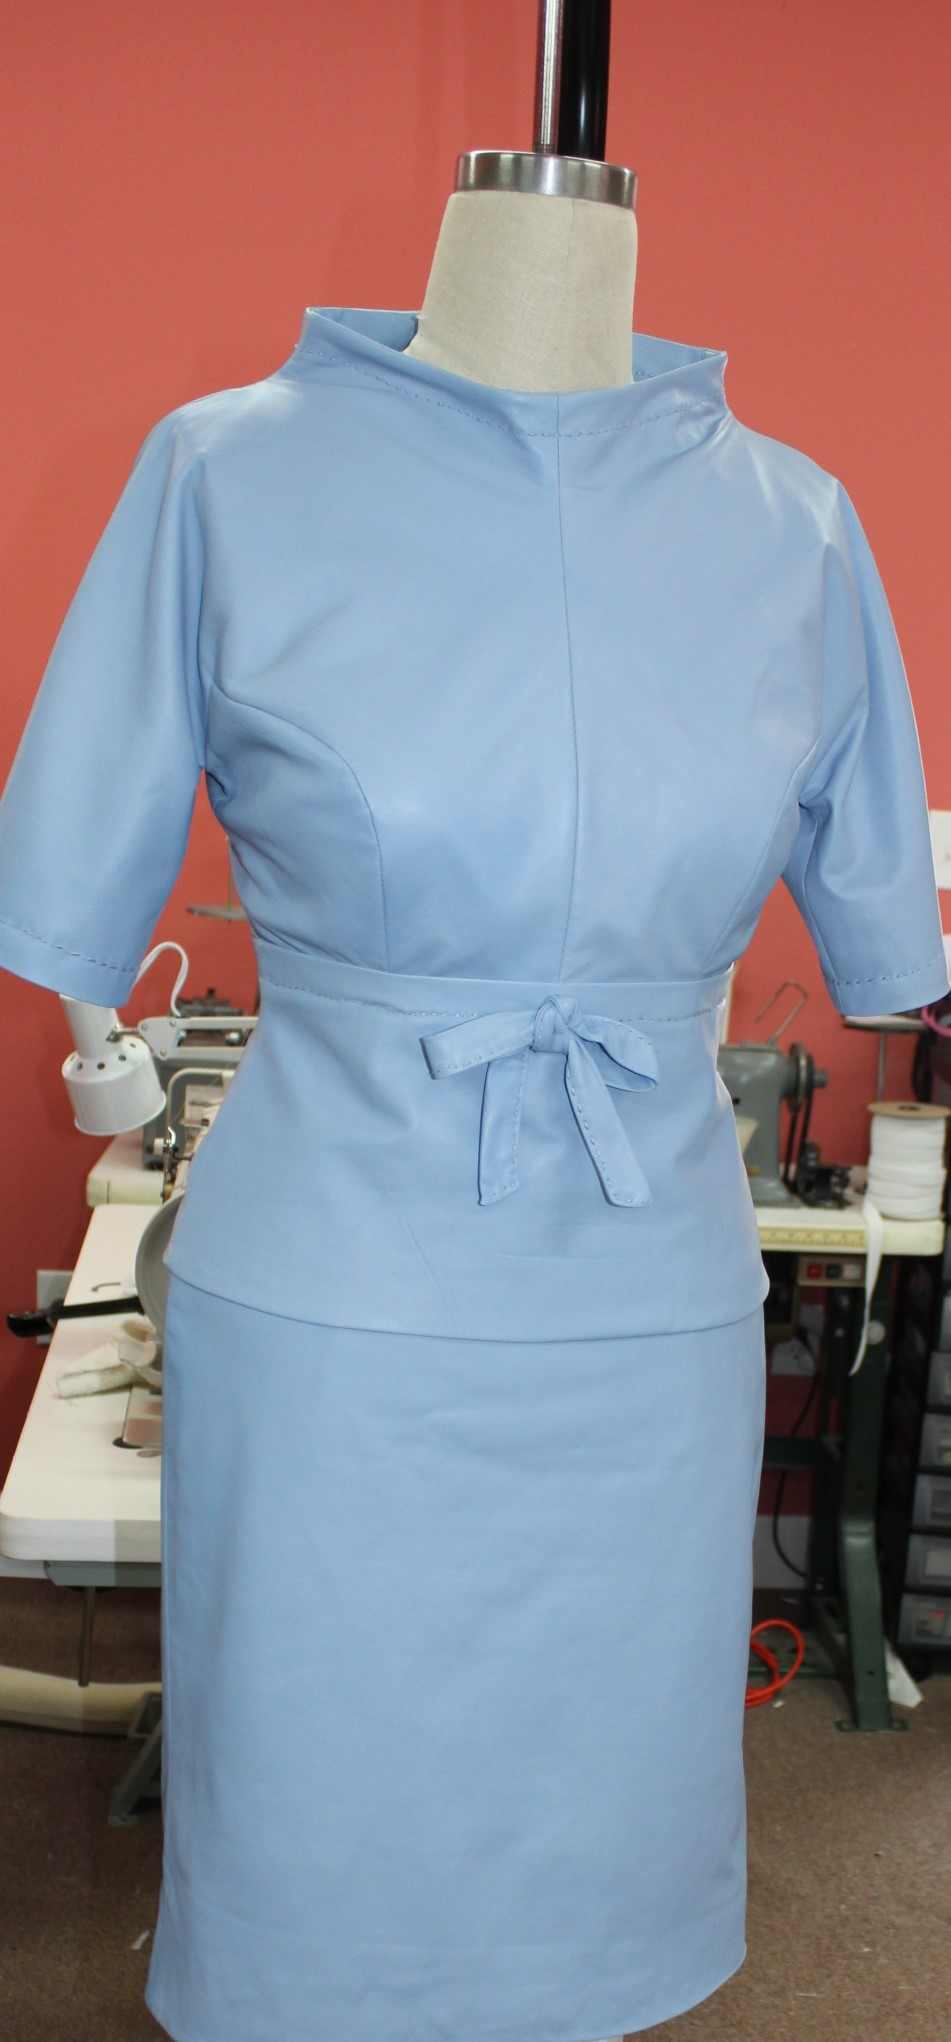 The finished garment.JPG